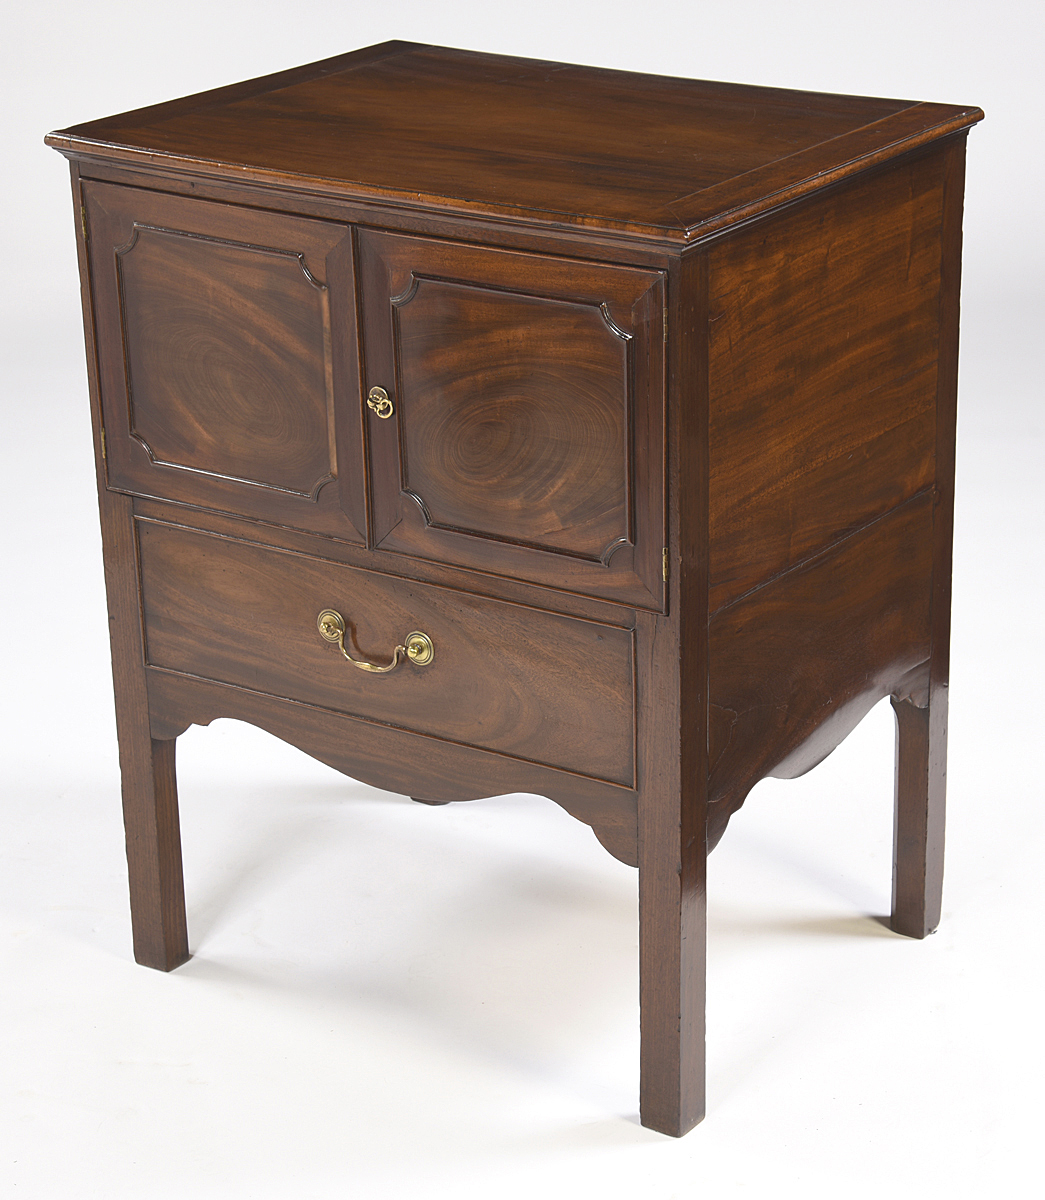 Antique English Mahogany Bedside